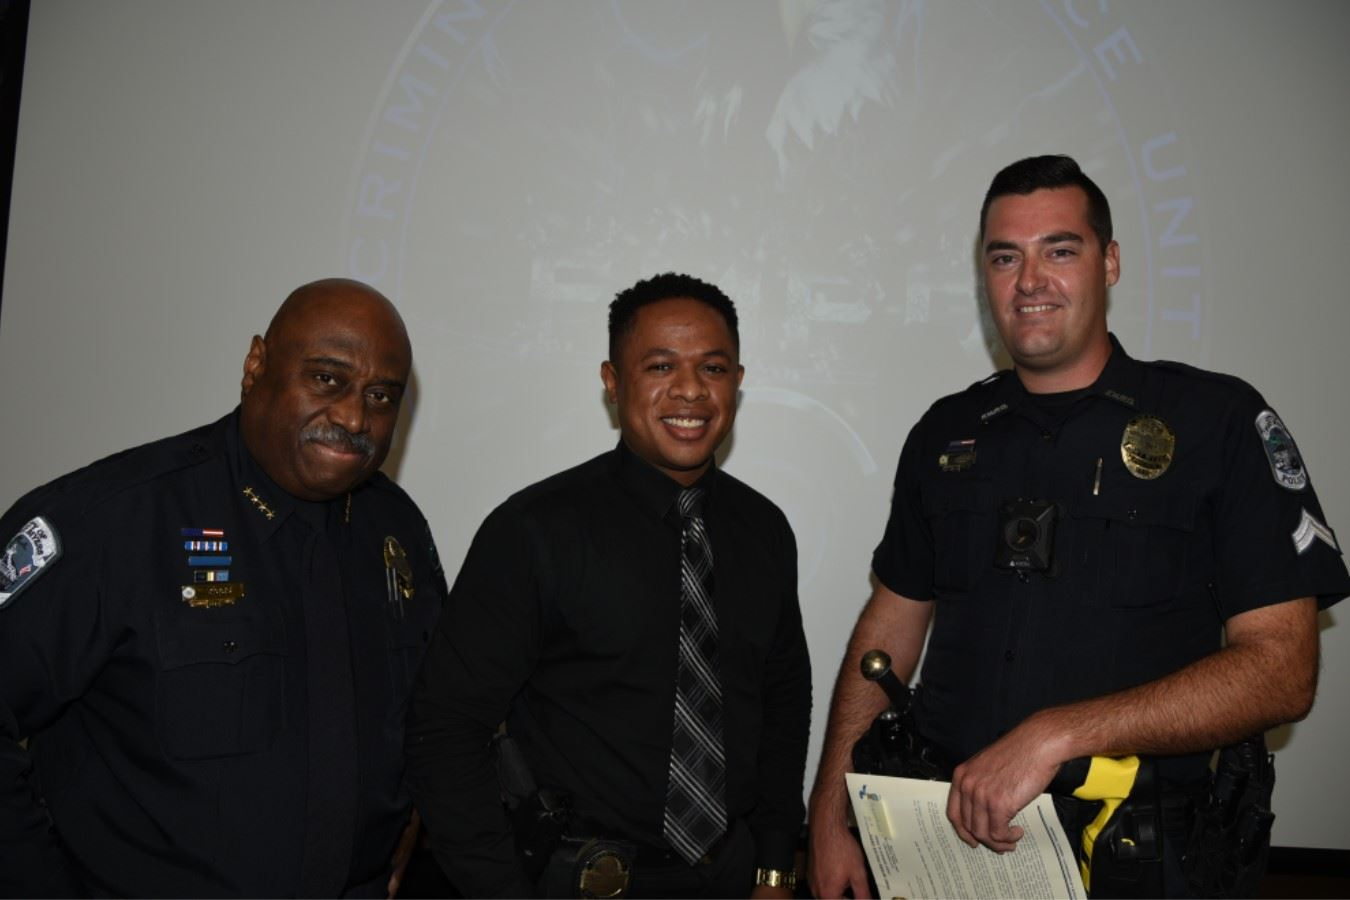 Chief Diggs-Sgt. Gomez-Officer Gaide